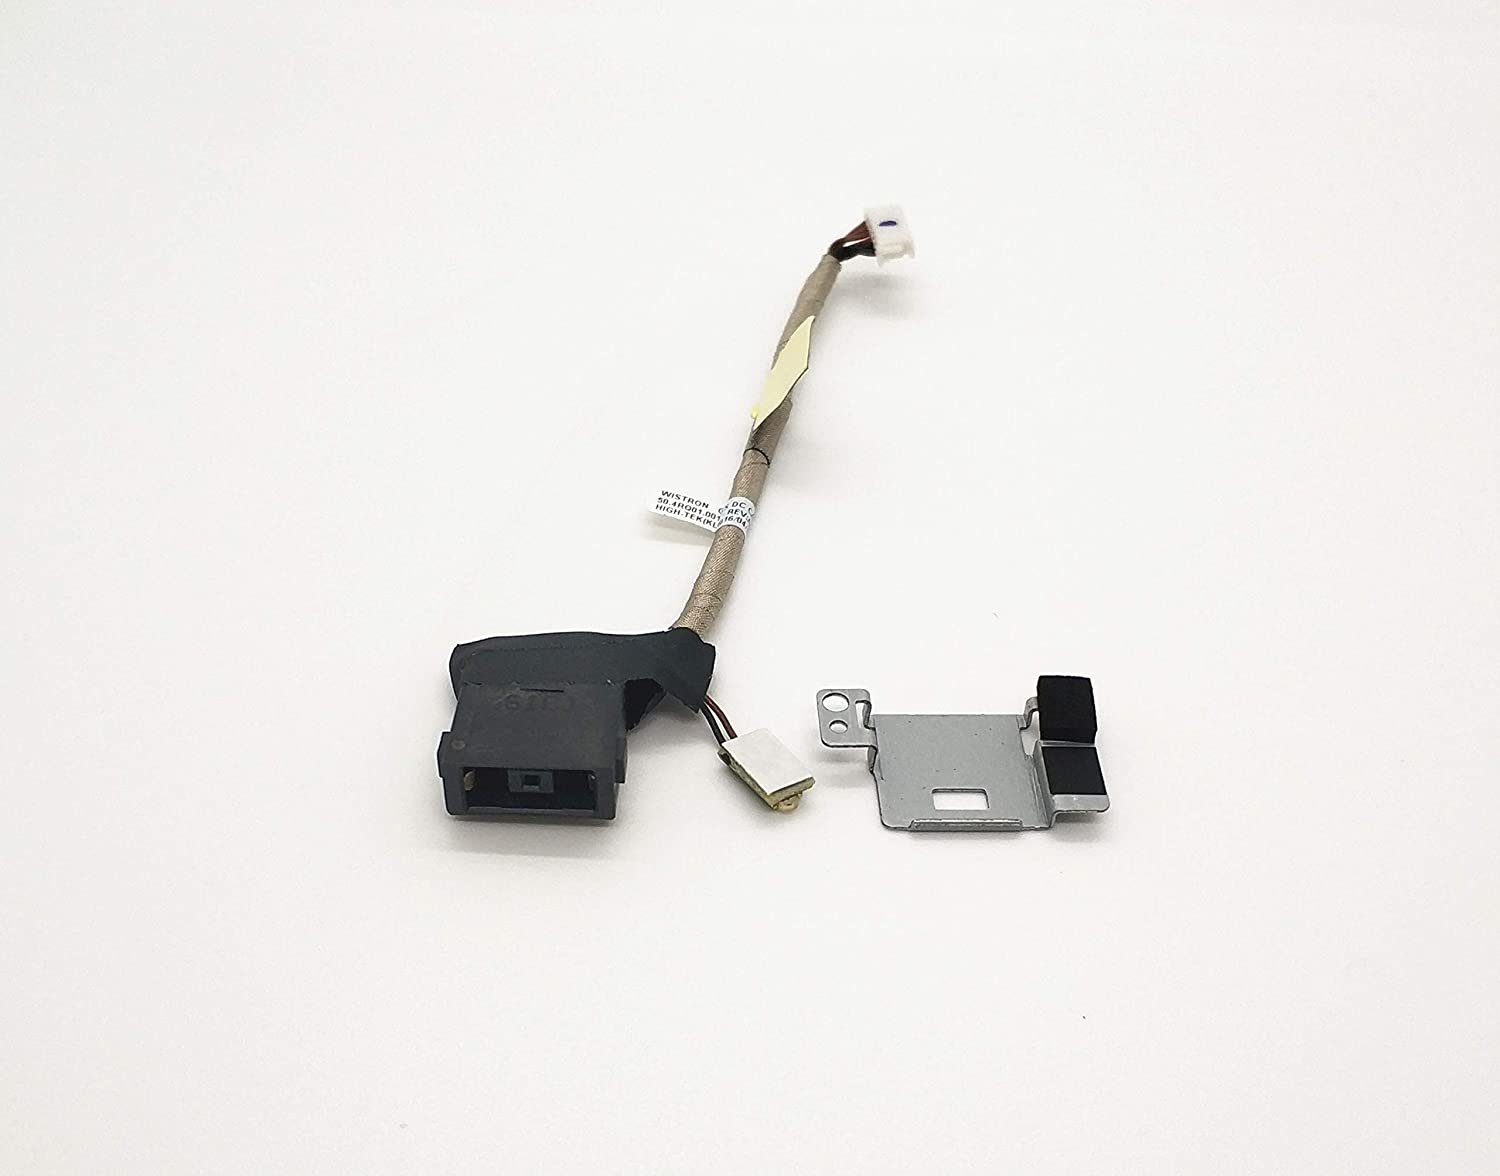 Cable Length: Board with Cable Occus New Occus F Thinkpad X1 Carbon Power Button Board 00HN988 2015 Full Tested Occus